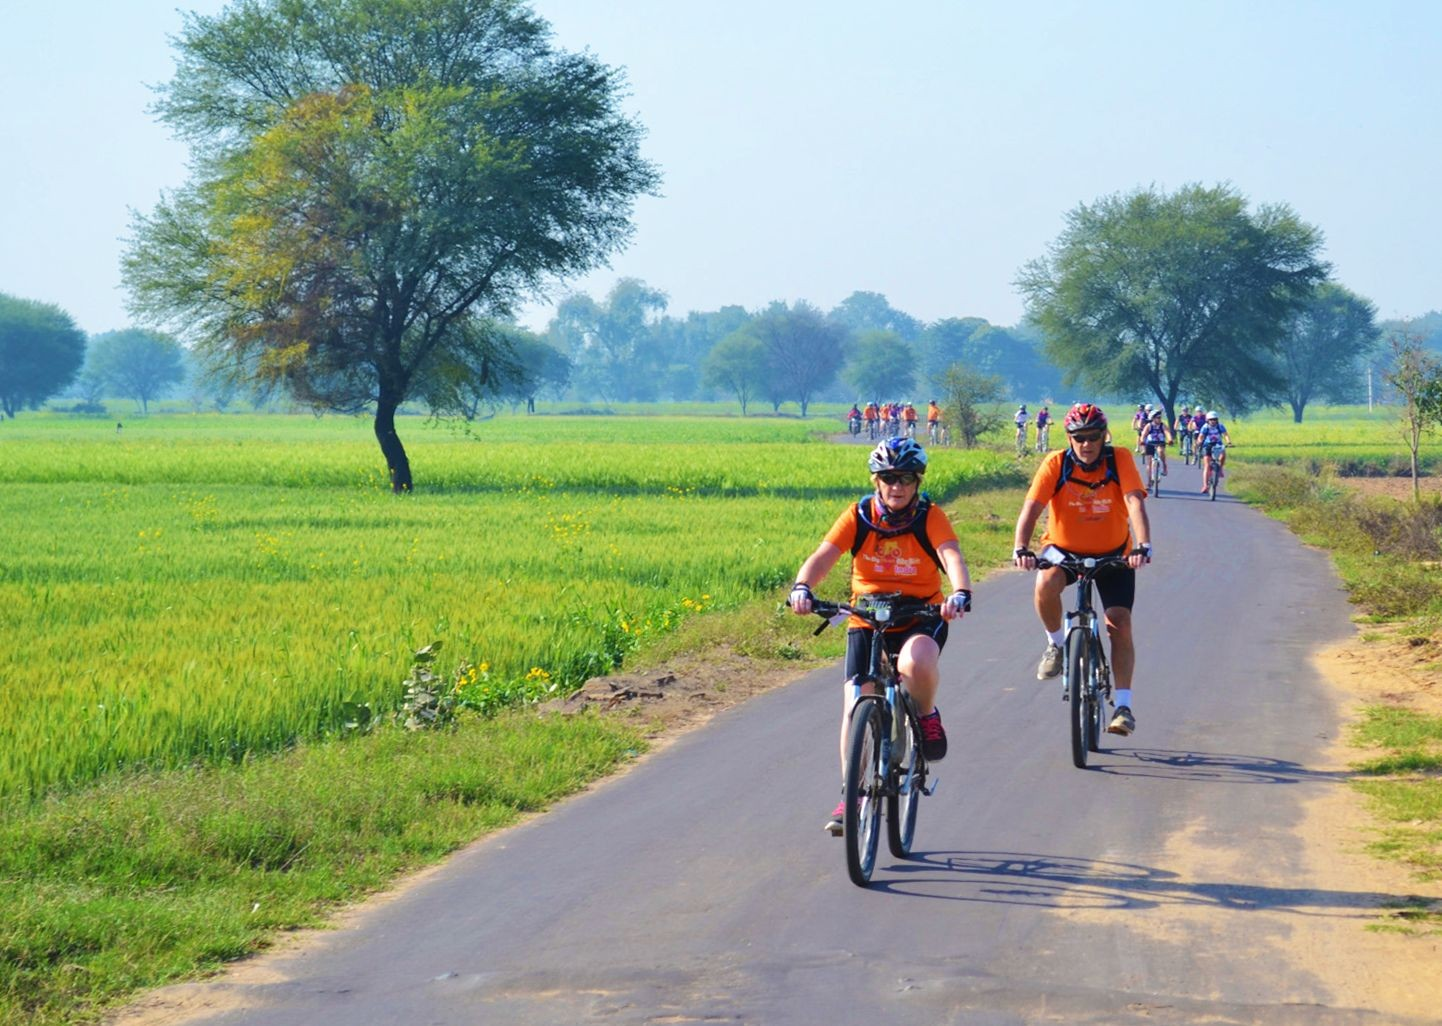 DSC_0574 copy.jpg - India - Palaces and Lakes of Rajasthan - Cycling Adventures